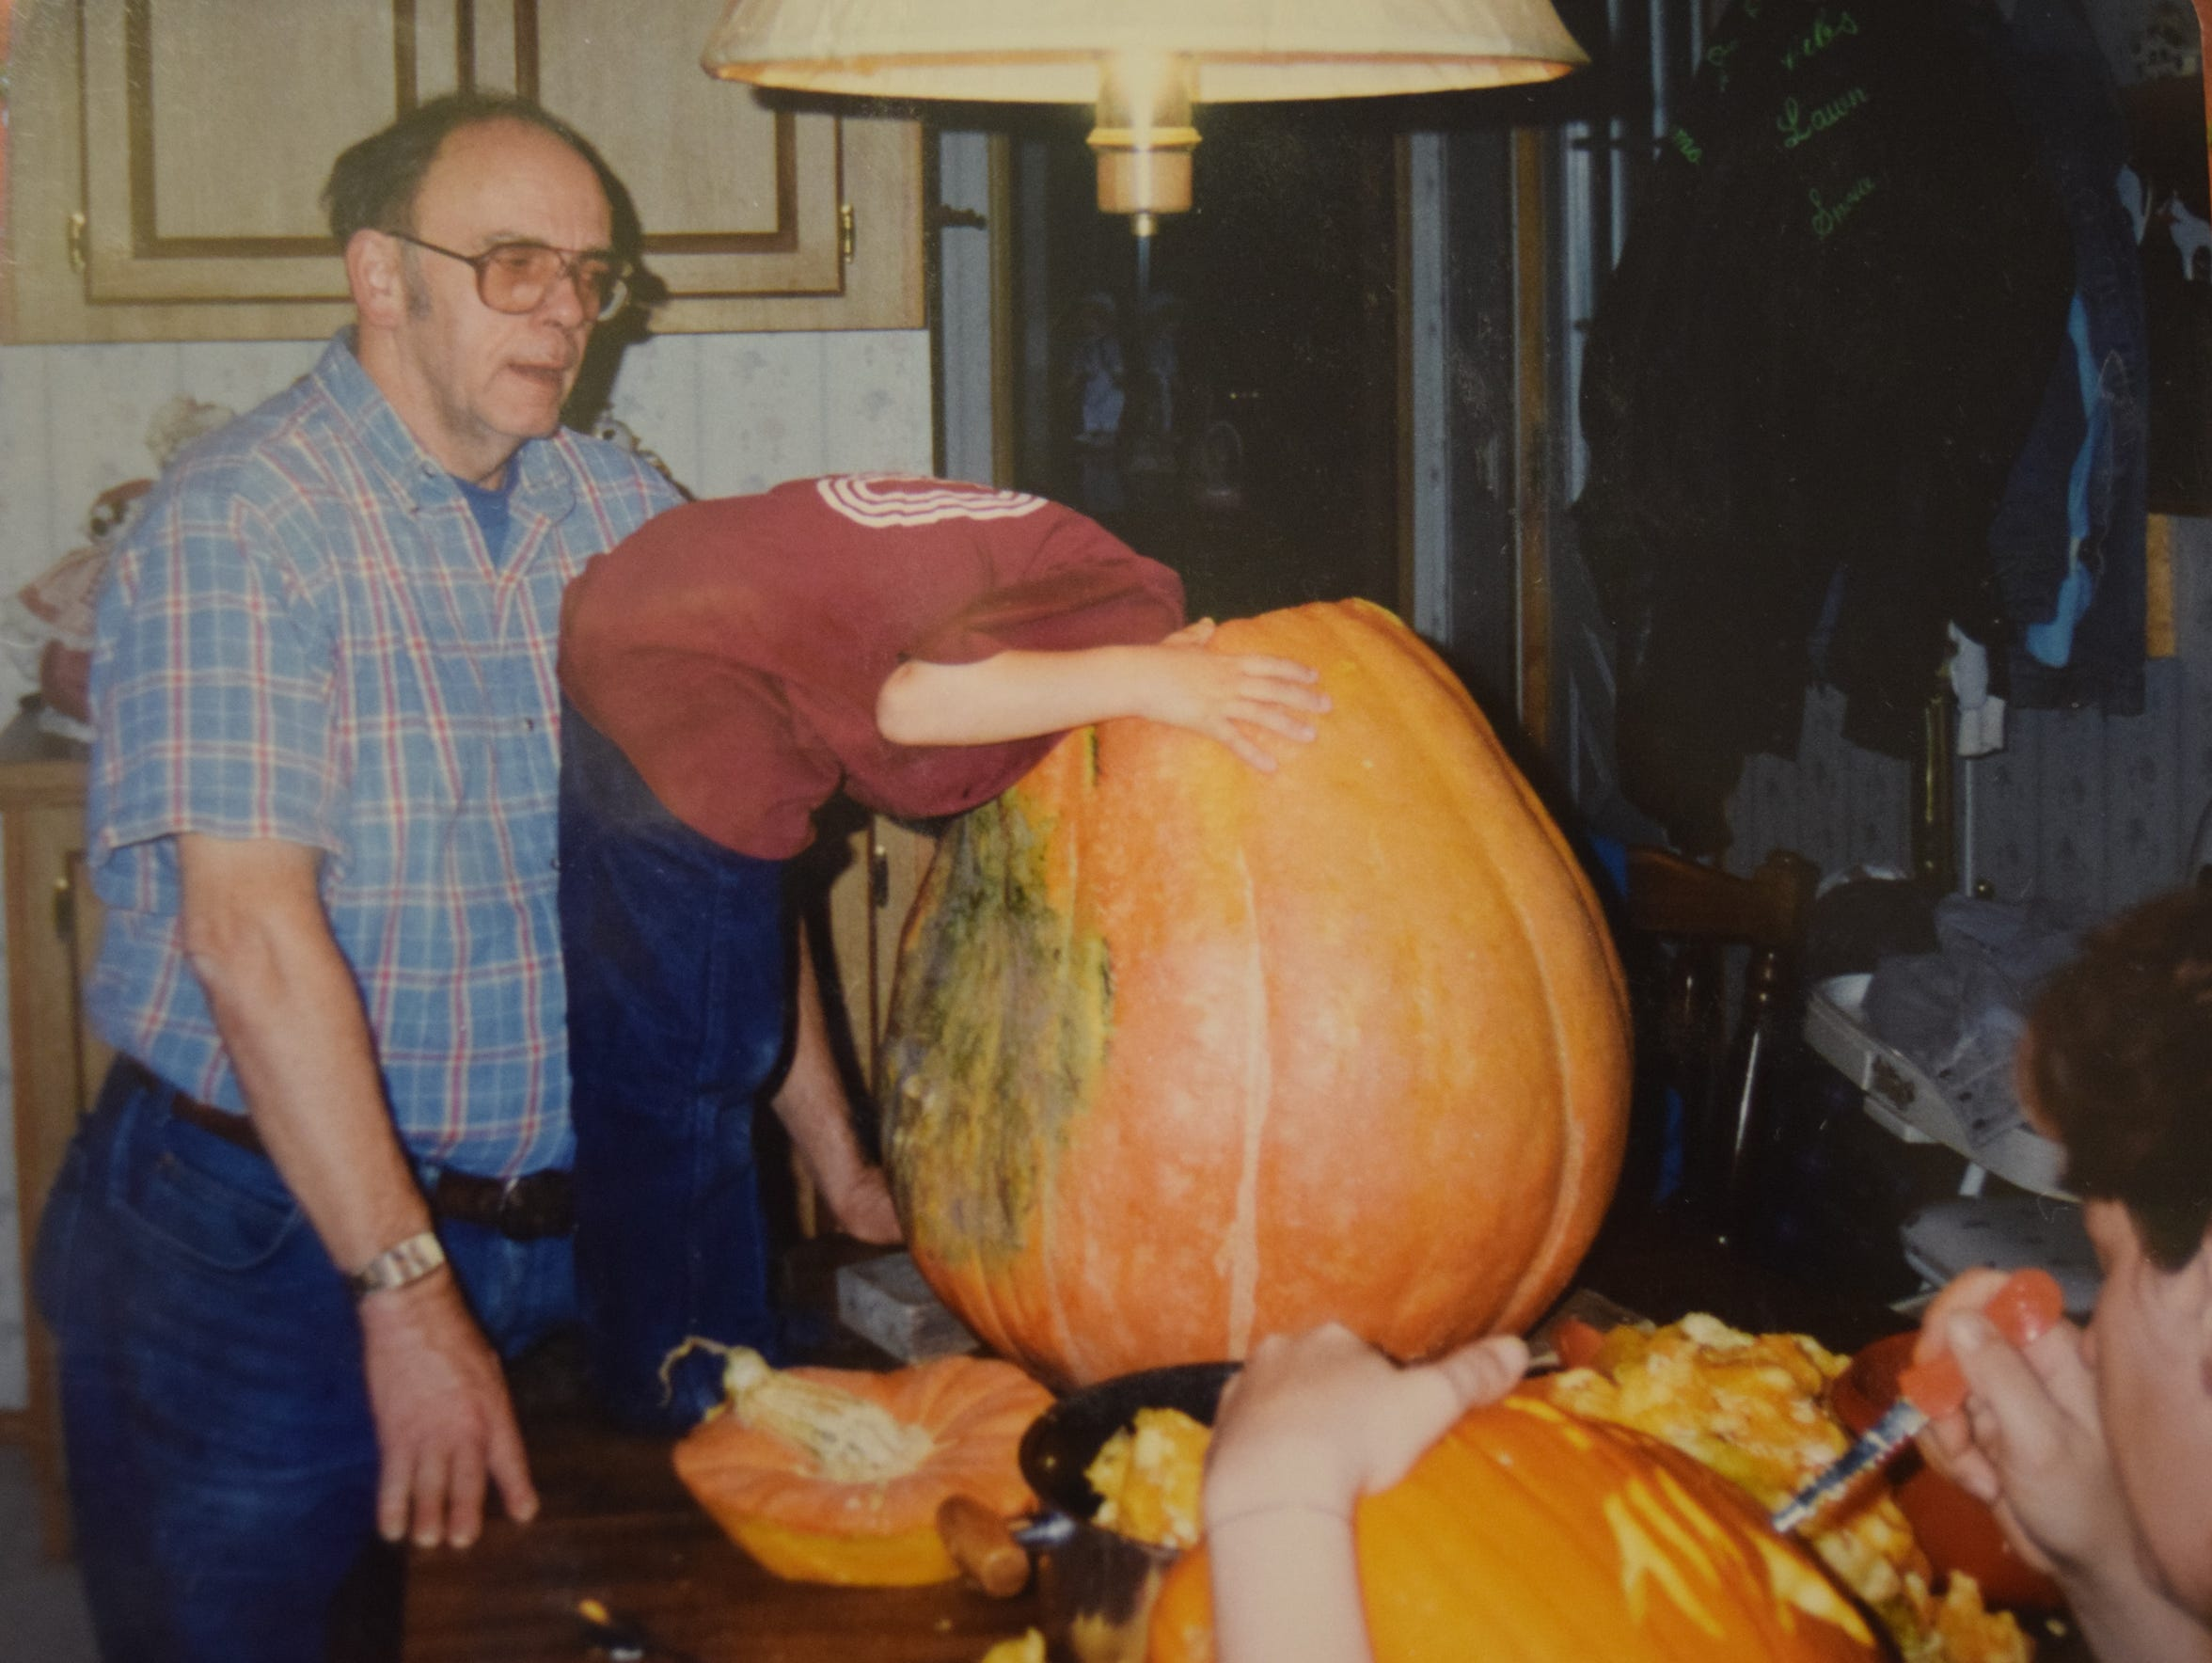 Tysin Gibson with his head in a pumpkin, carving pumpkins